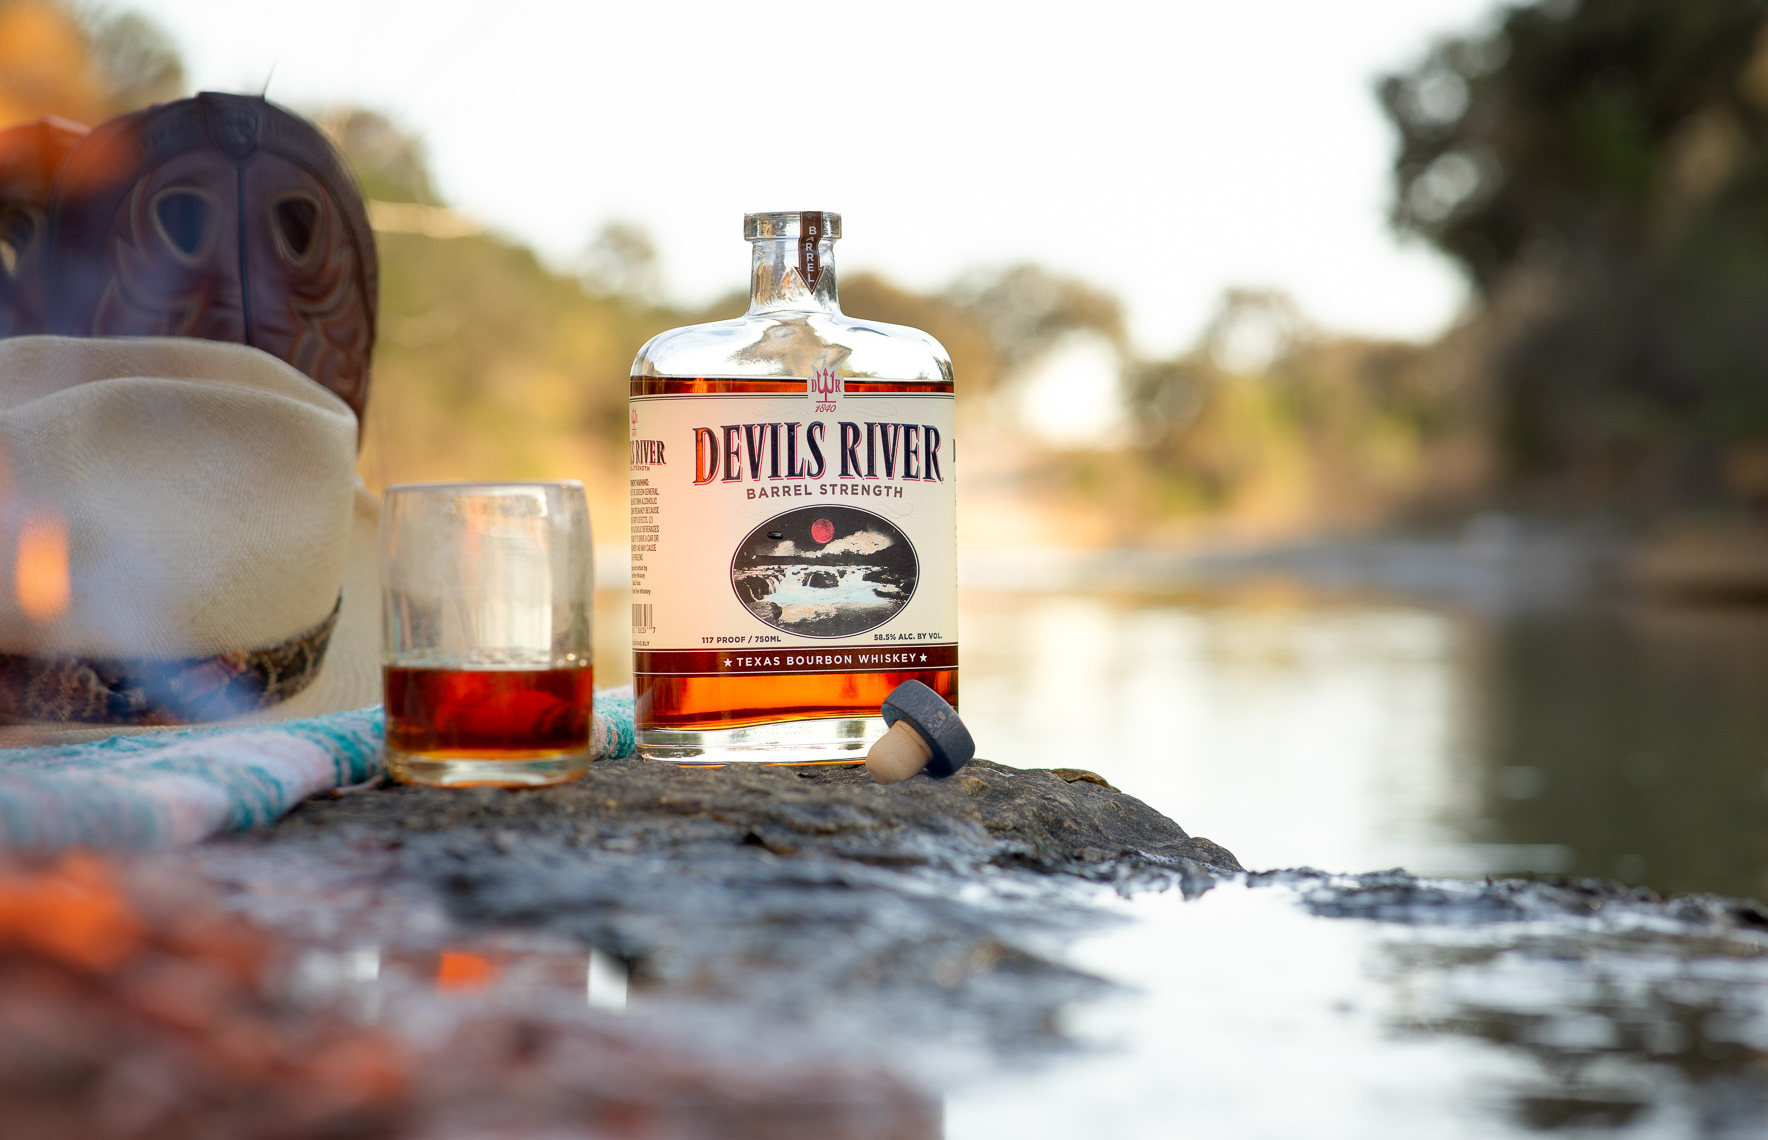 devils-river-whiskey-jason-risner-photography